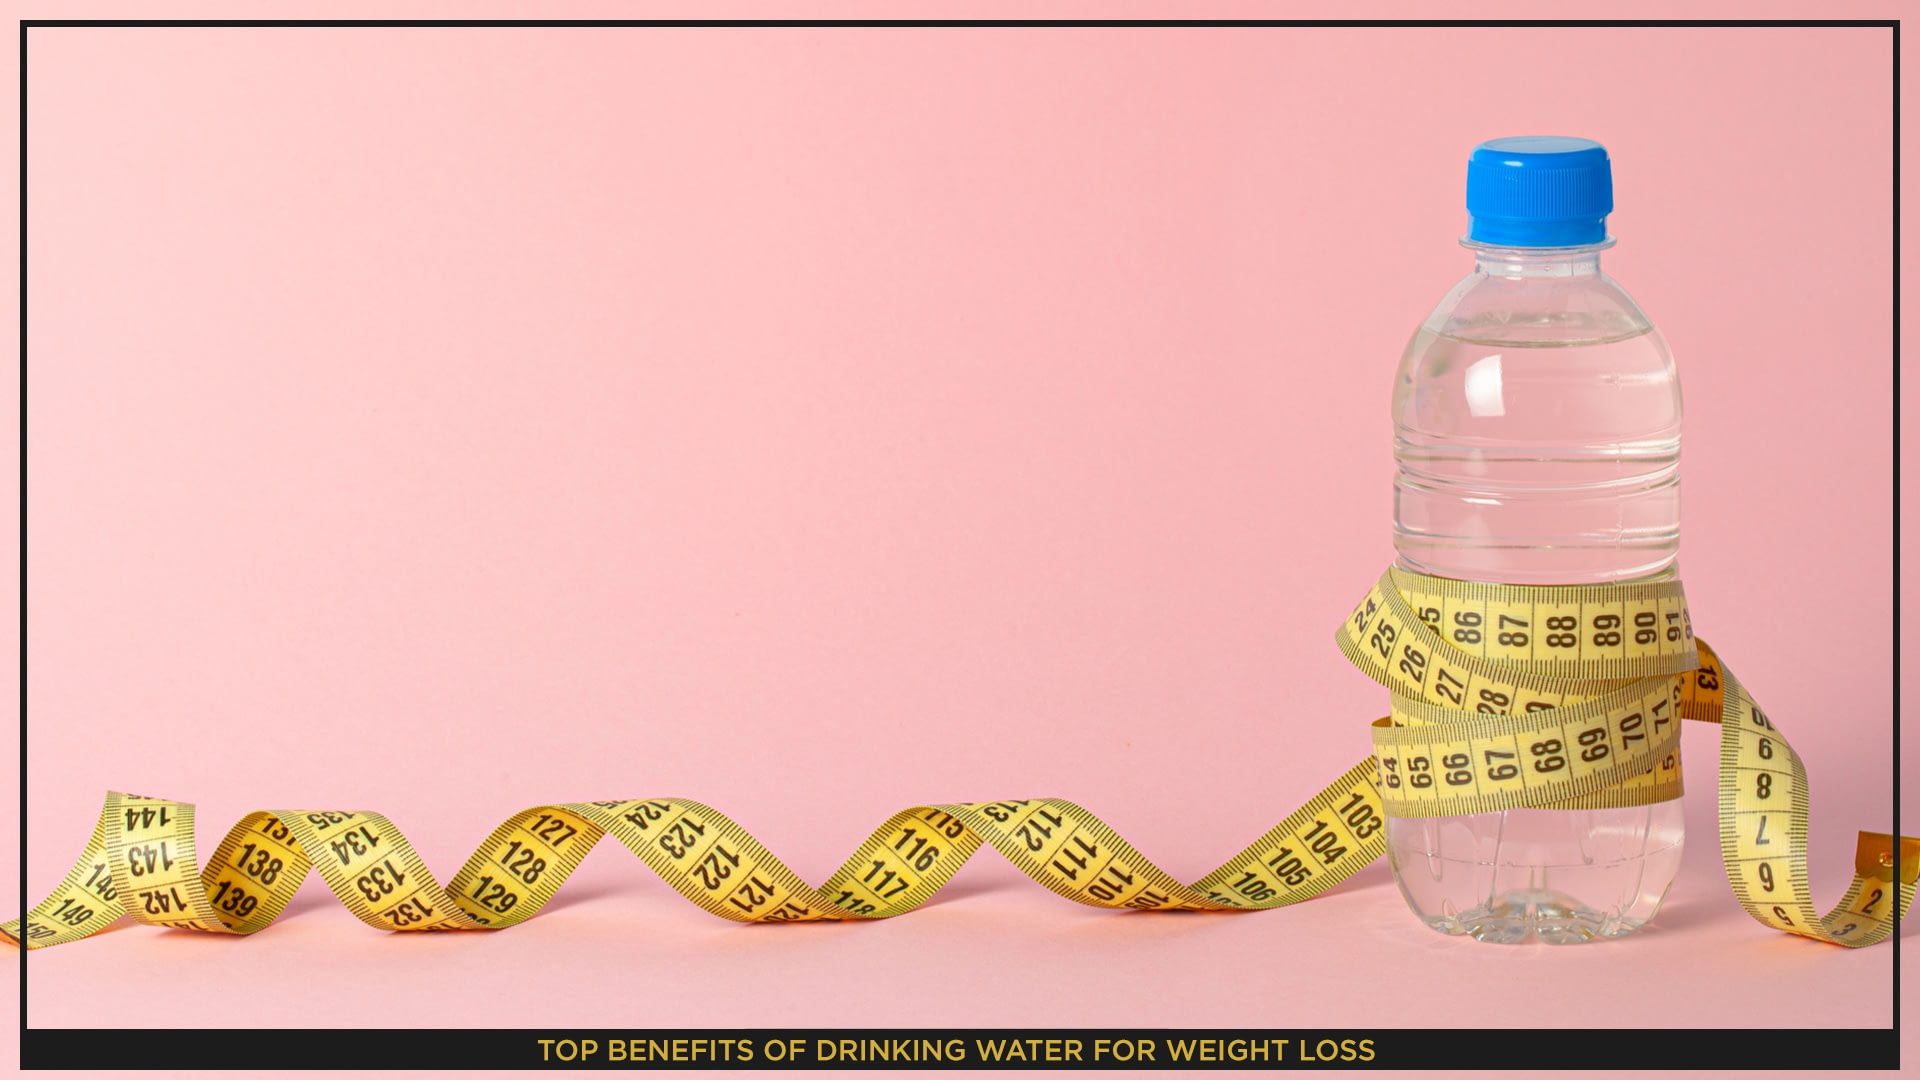 An image of bottle of water on a pink background, with a tool for taking measurements around it.